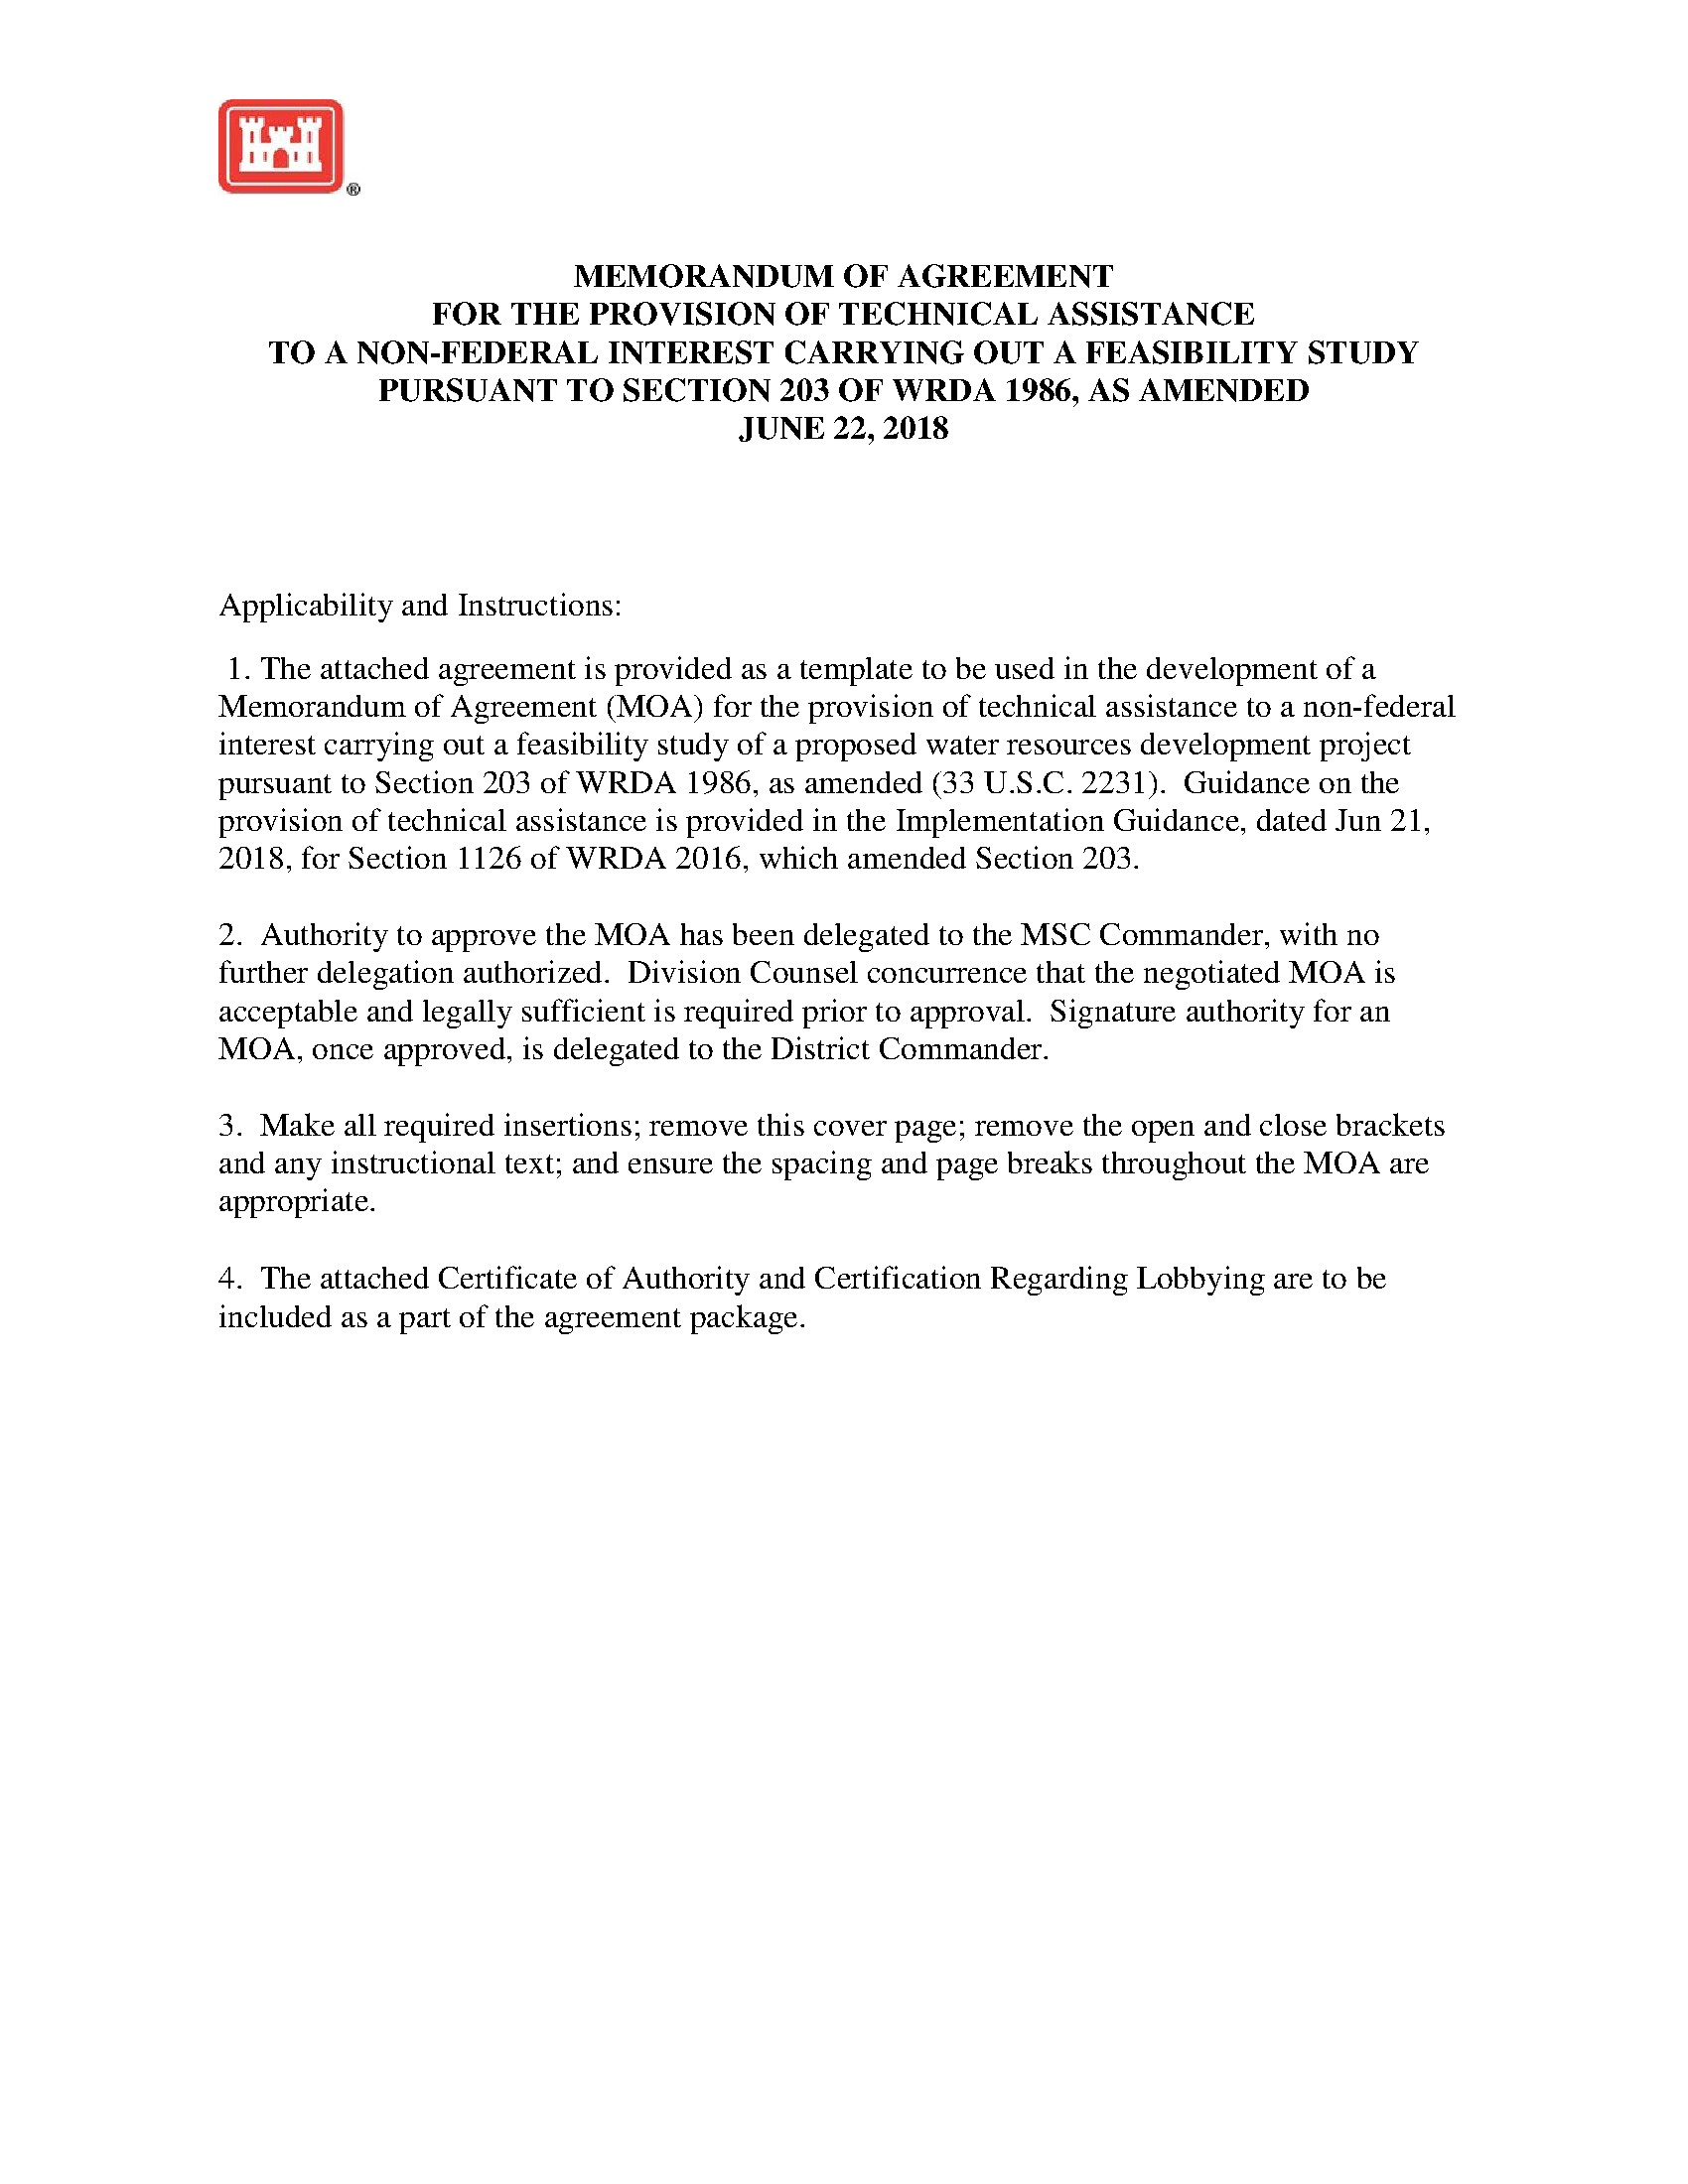 Memorandum Of Agreement For The Provision Of Technical Assistance To